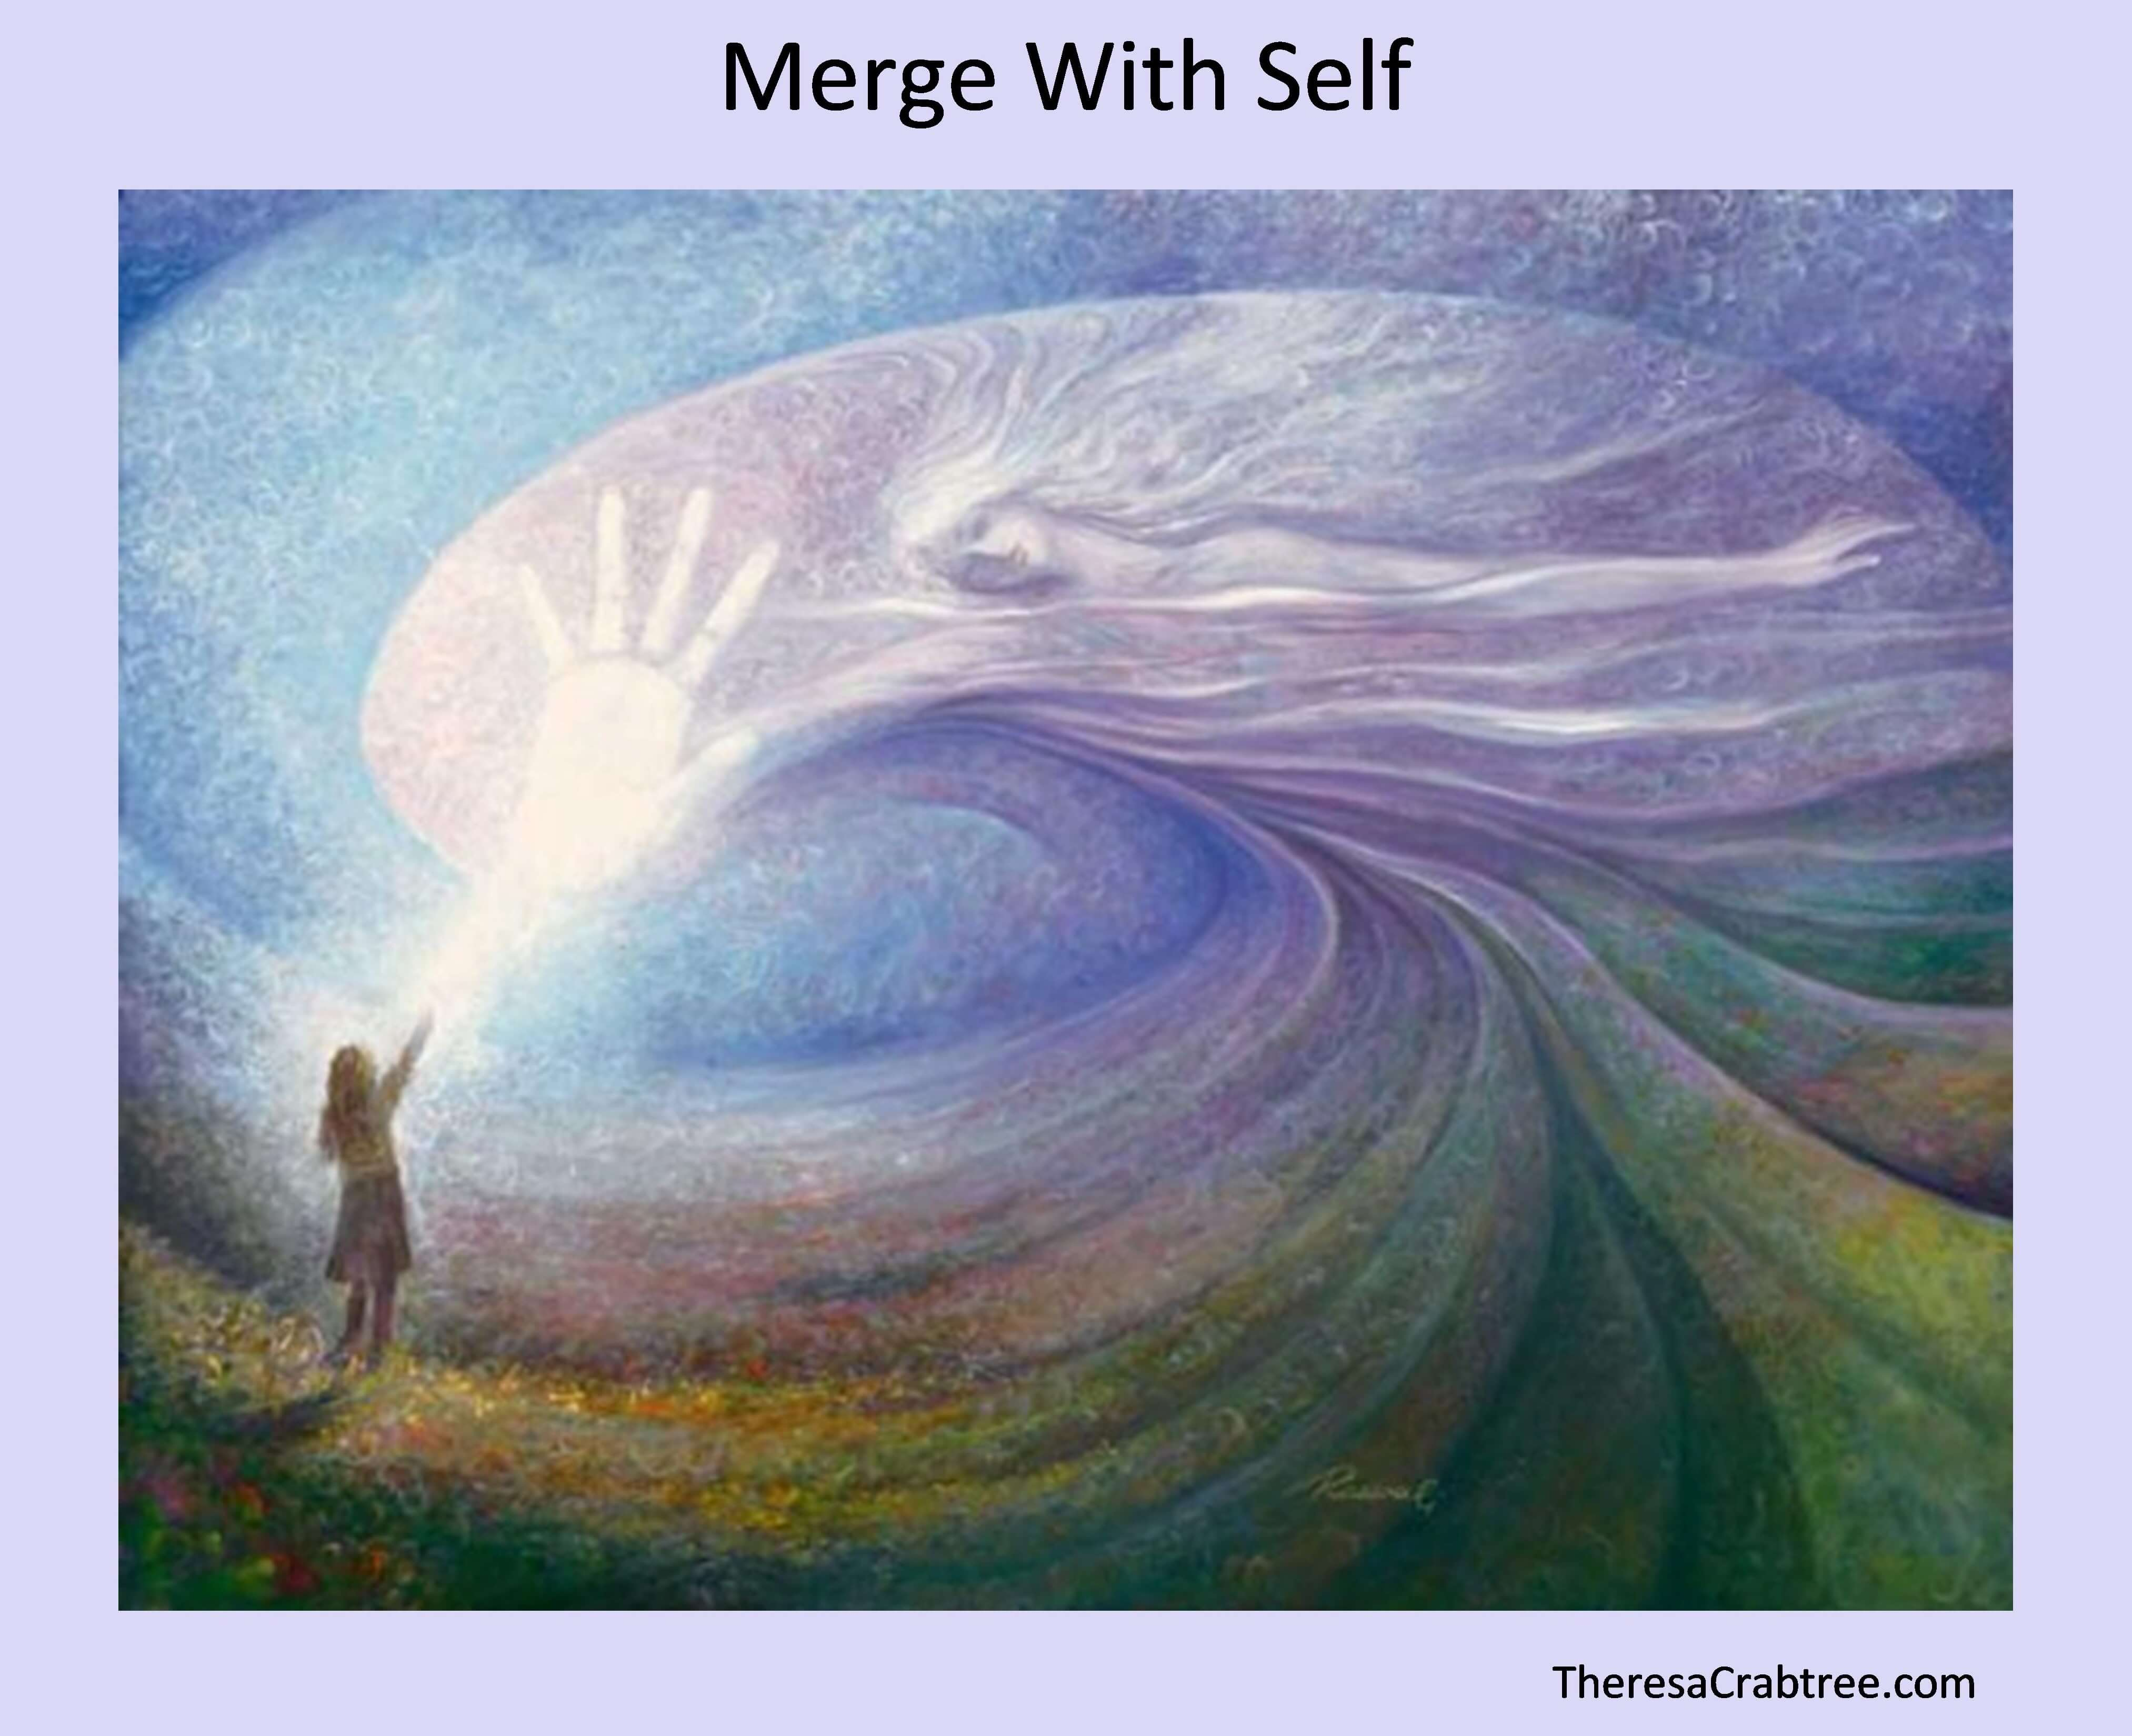 Merge with Higher Self